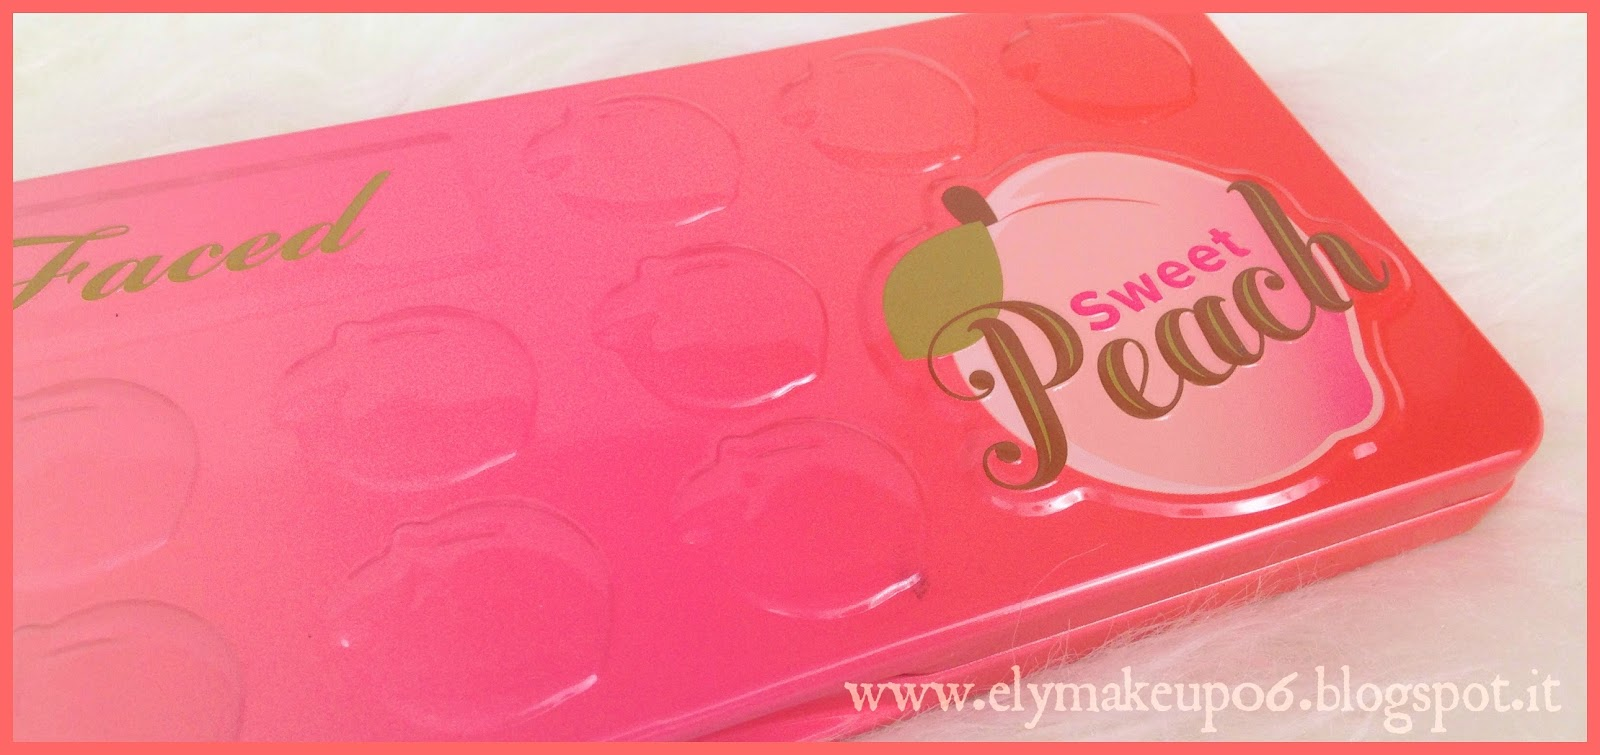 Elymakeup sweet peach eyeshadow palette too faced swatch e review - Riflessi in uno specchio scuro ...